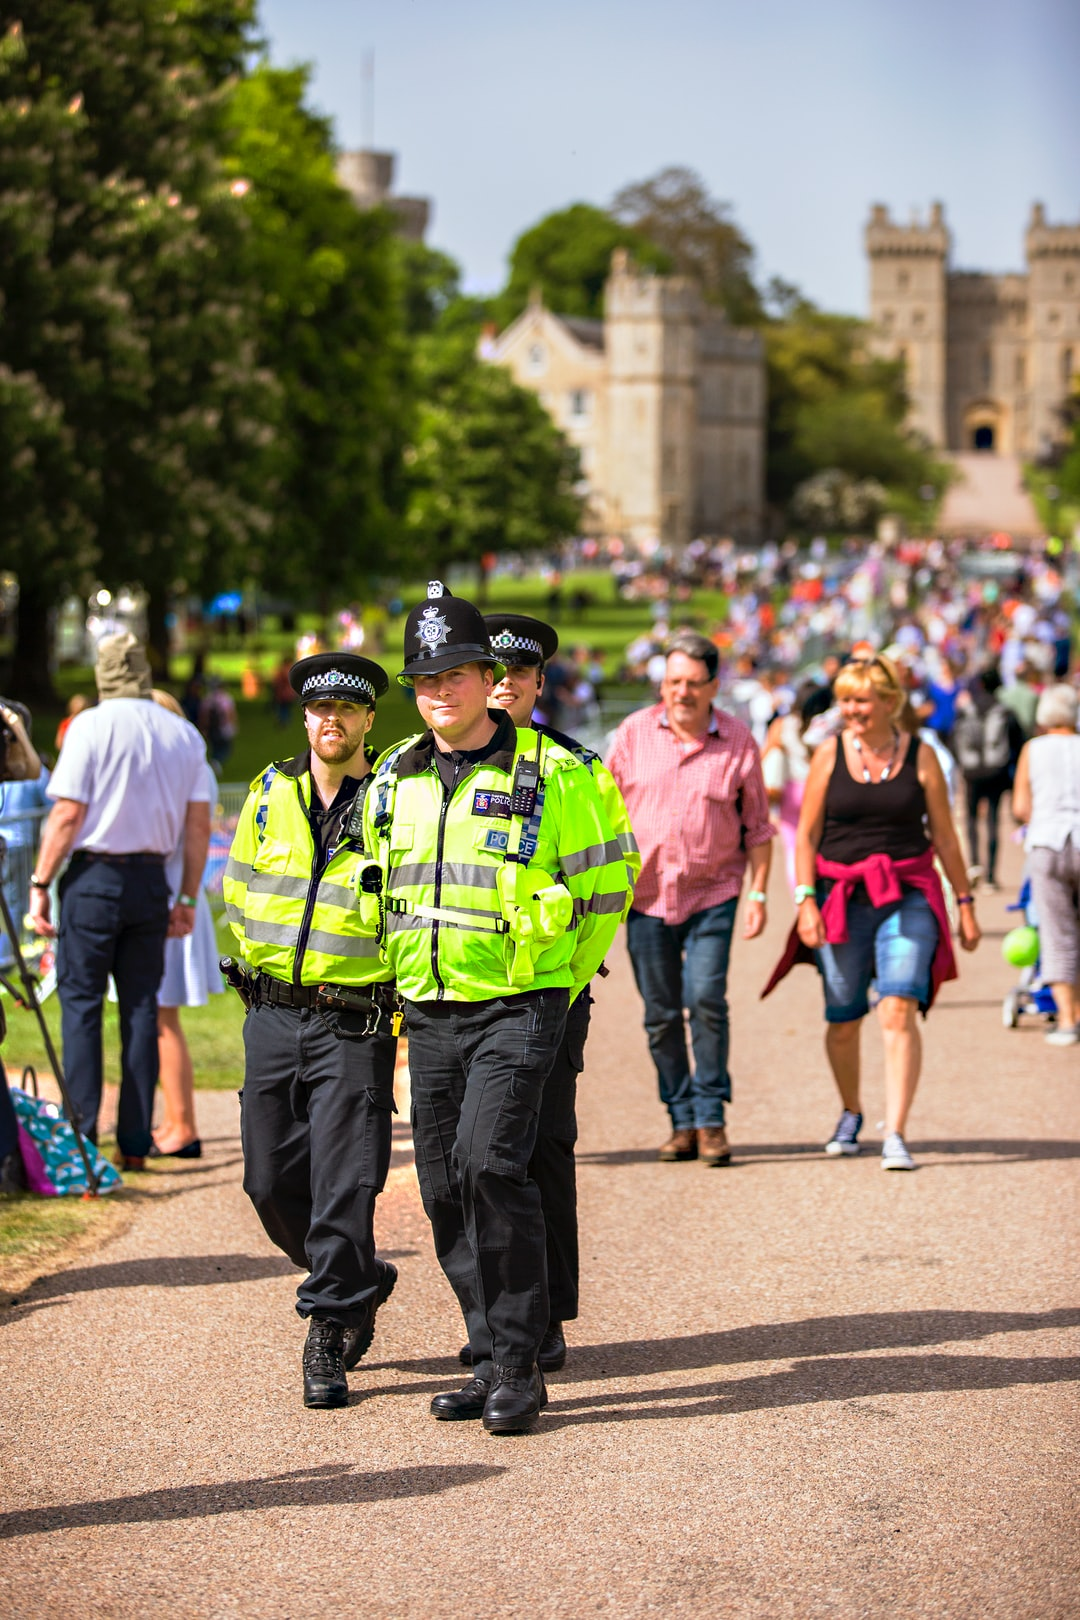 Crowds converging on Windsor to celebrate the Royal Wedding of Prince Harry and Meghan Markle.